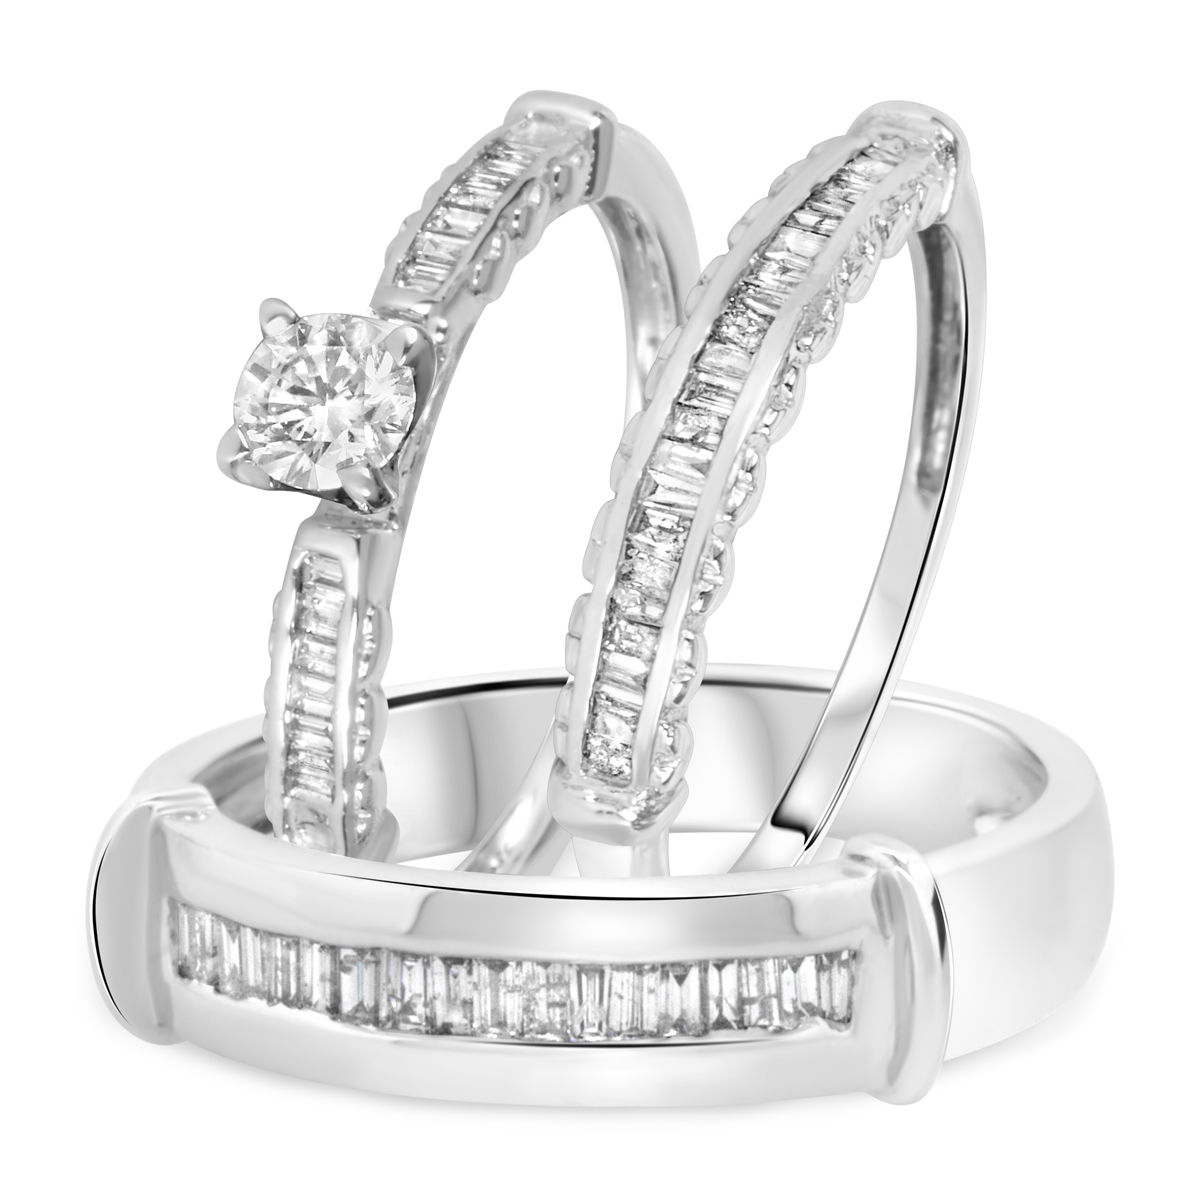 1 ct tw diamond ladies engagement ring wedding band for Ladies diamond wedding ring sets